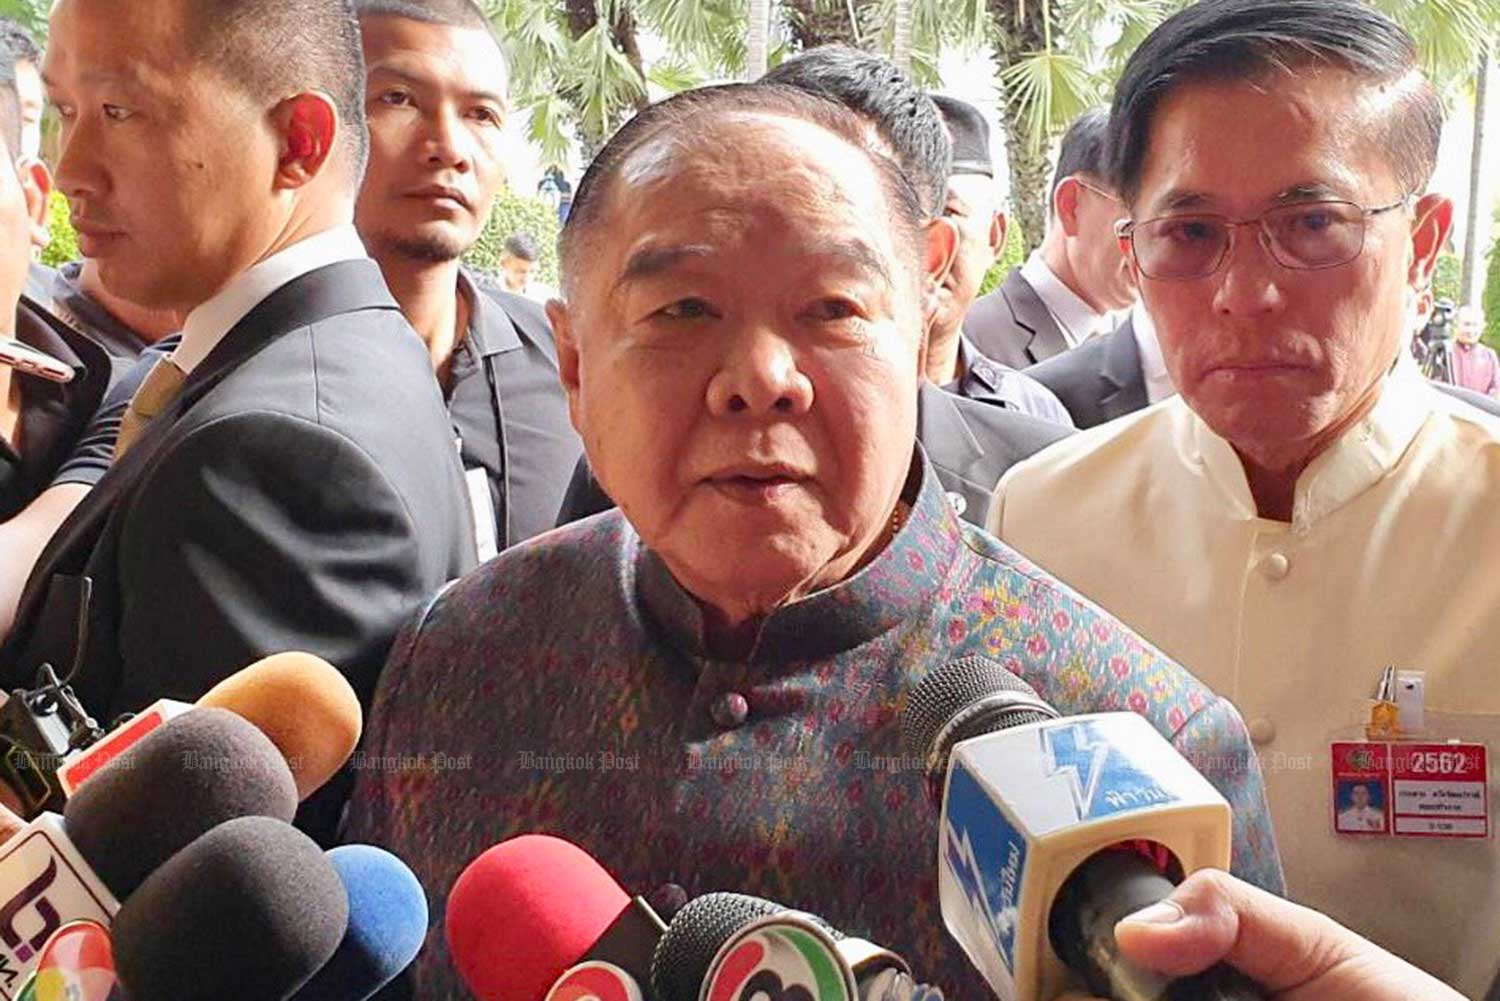 Deputy Prime Minister Prawit Wongsuwon says the news report of Deputy Agriculture Minister Thammanat Prompao's time in an Australian jail for heroin smuggling is an individual matter he must handle himself, and will not affect the government. (Photo by Wassana Nanuam)